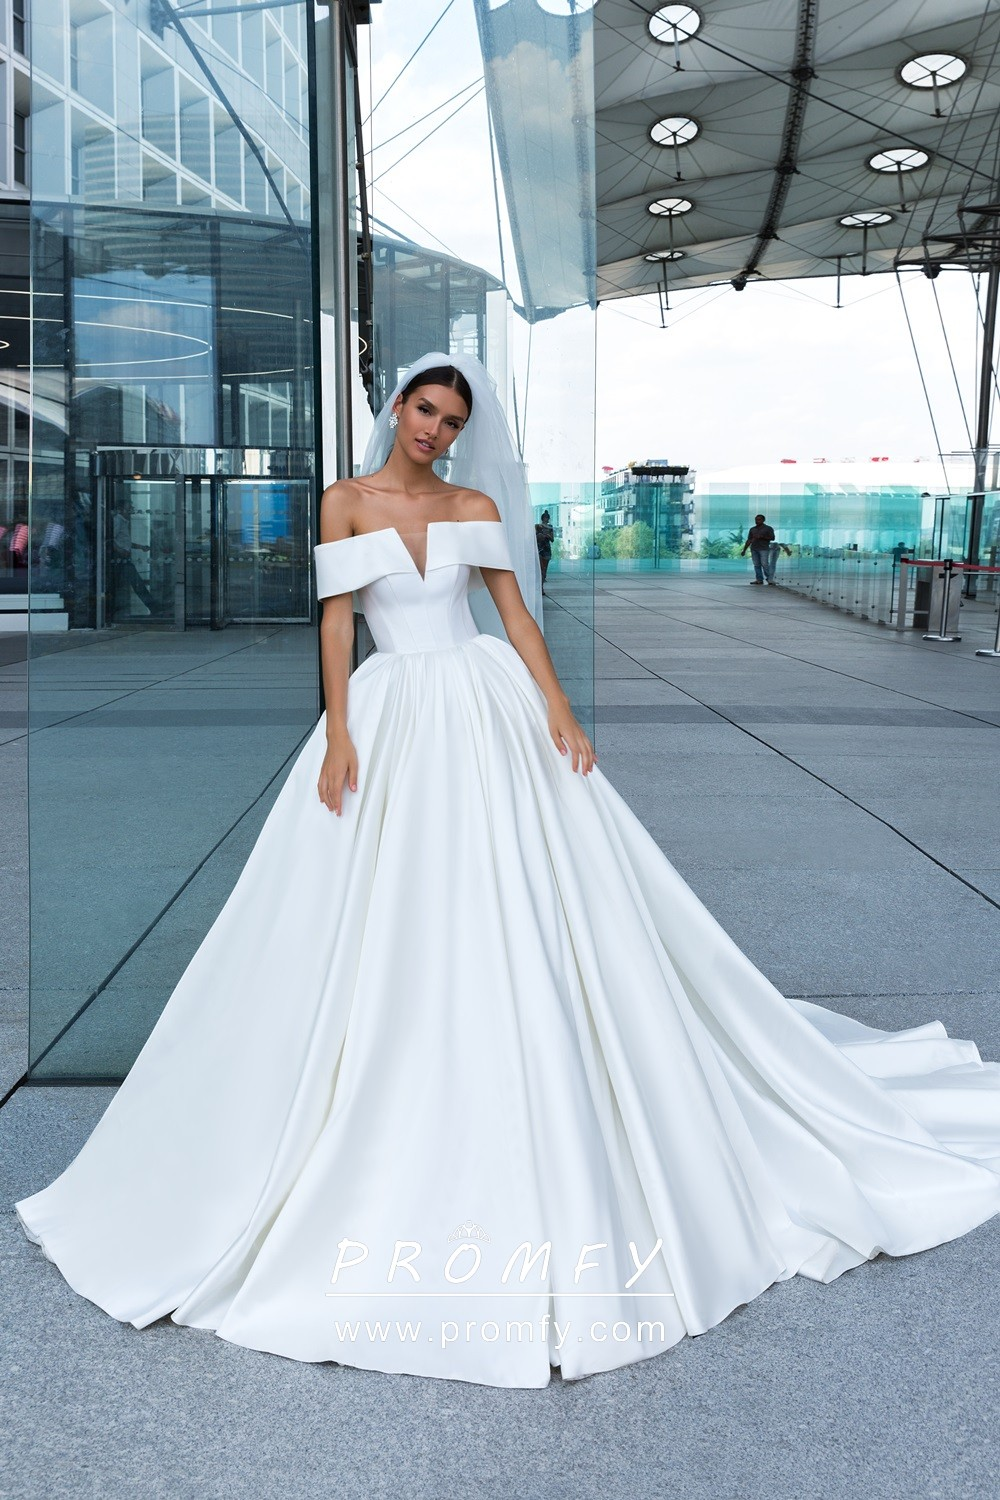 White Satin Off The Shoulder Modern Ballgown Wedding Dress With Cathedral Train